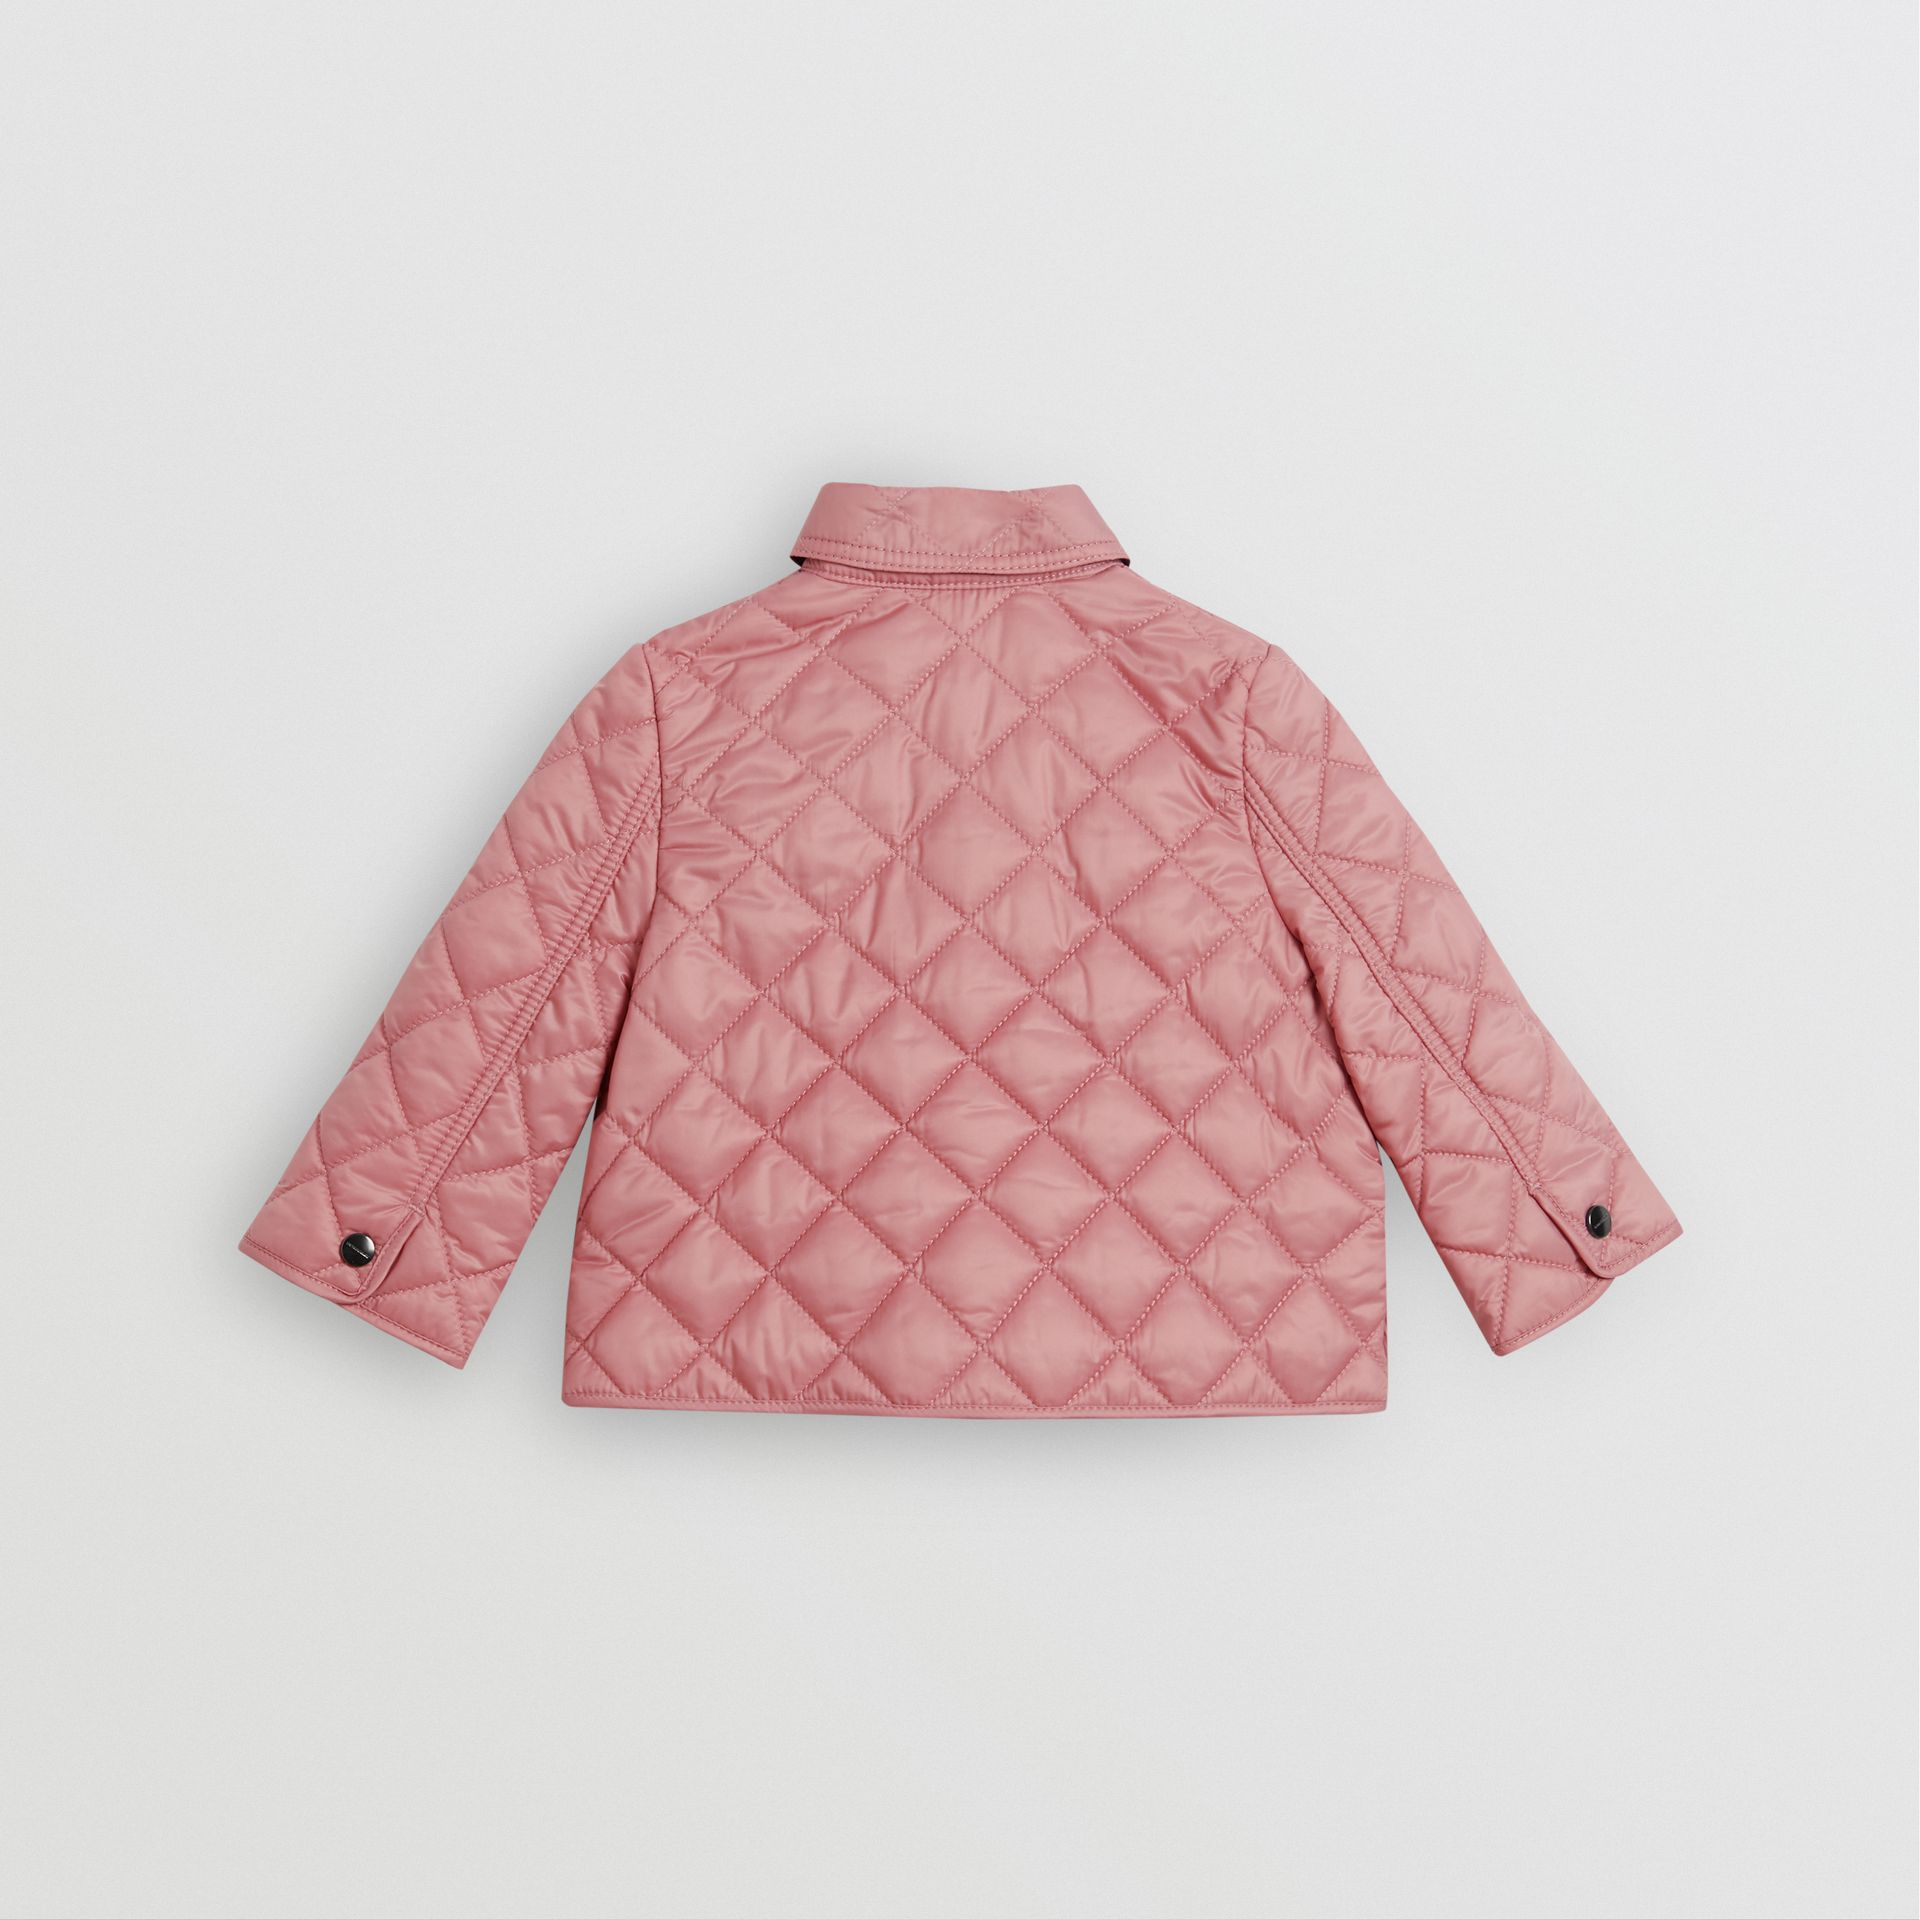 Lightweight Diamond Quilted Jacket in Pale Ash Rose - Children | Burberry Australia - gallery image 3